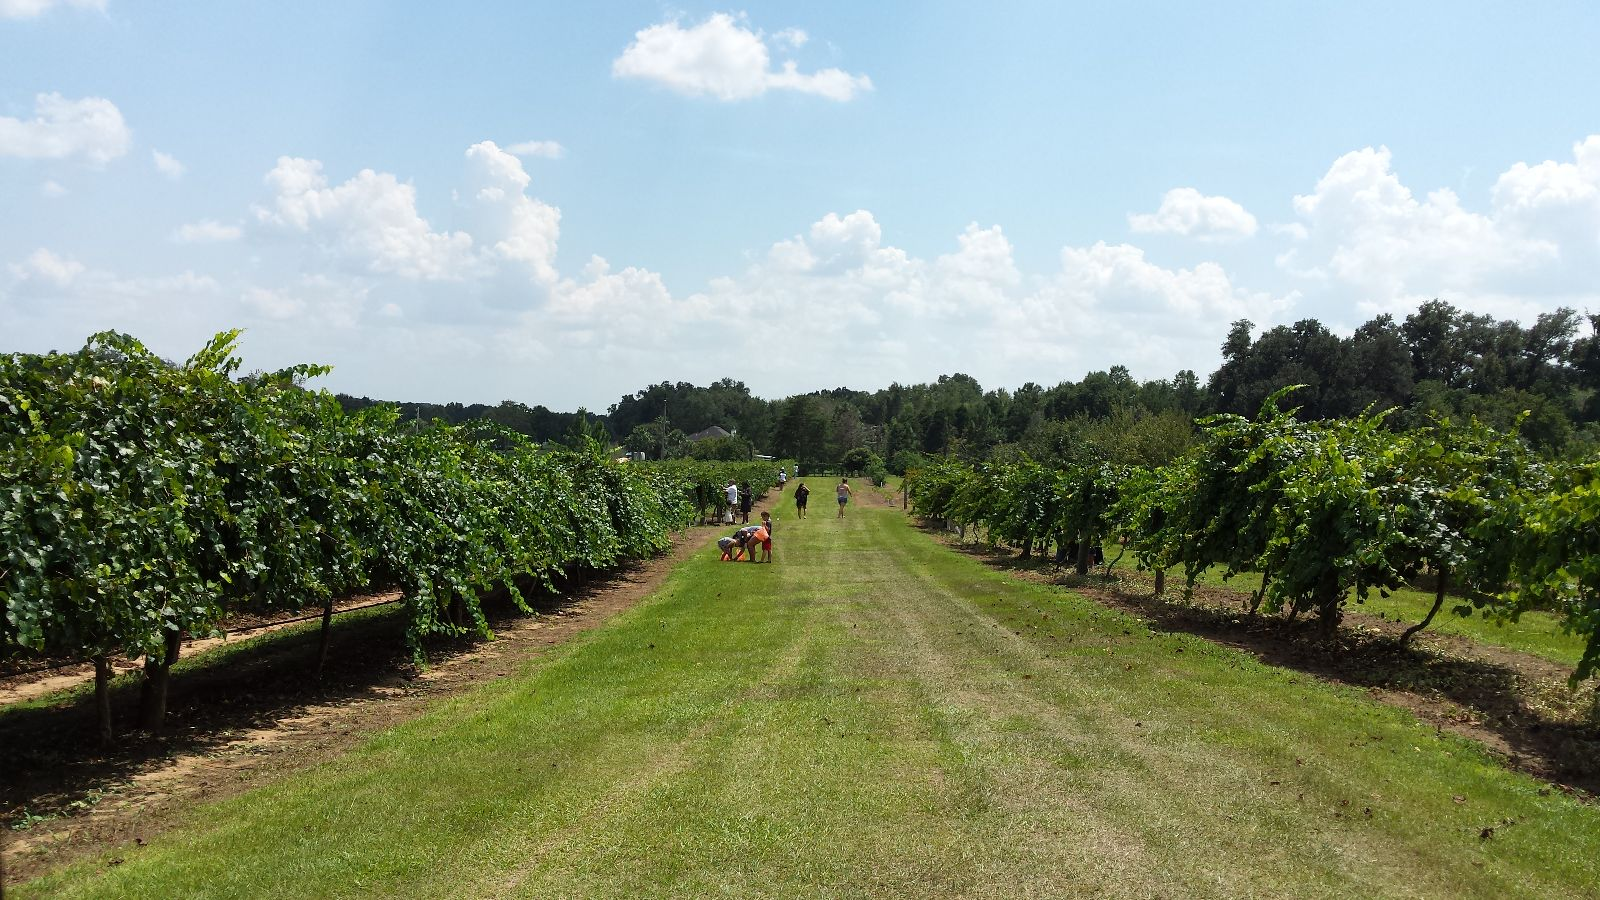 vit vineyard